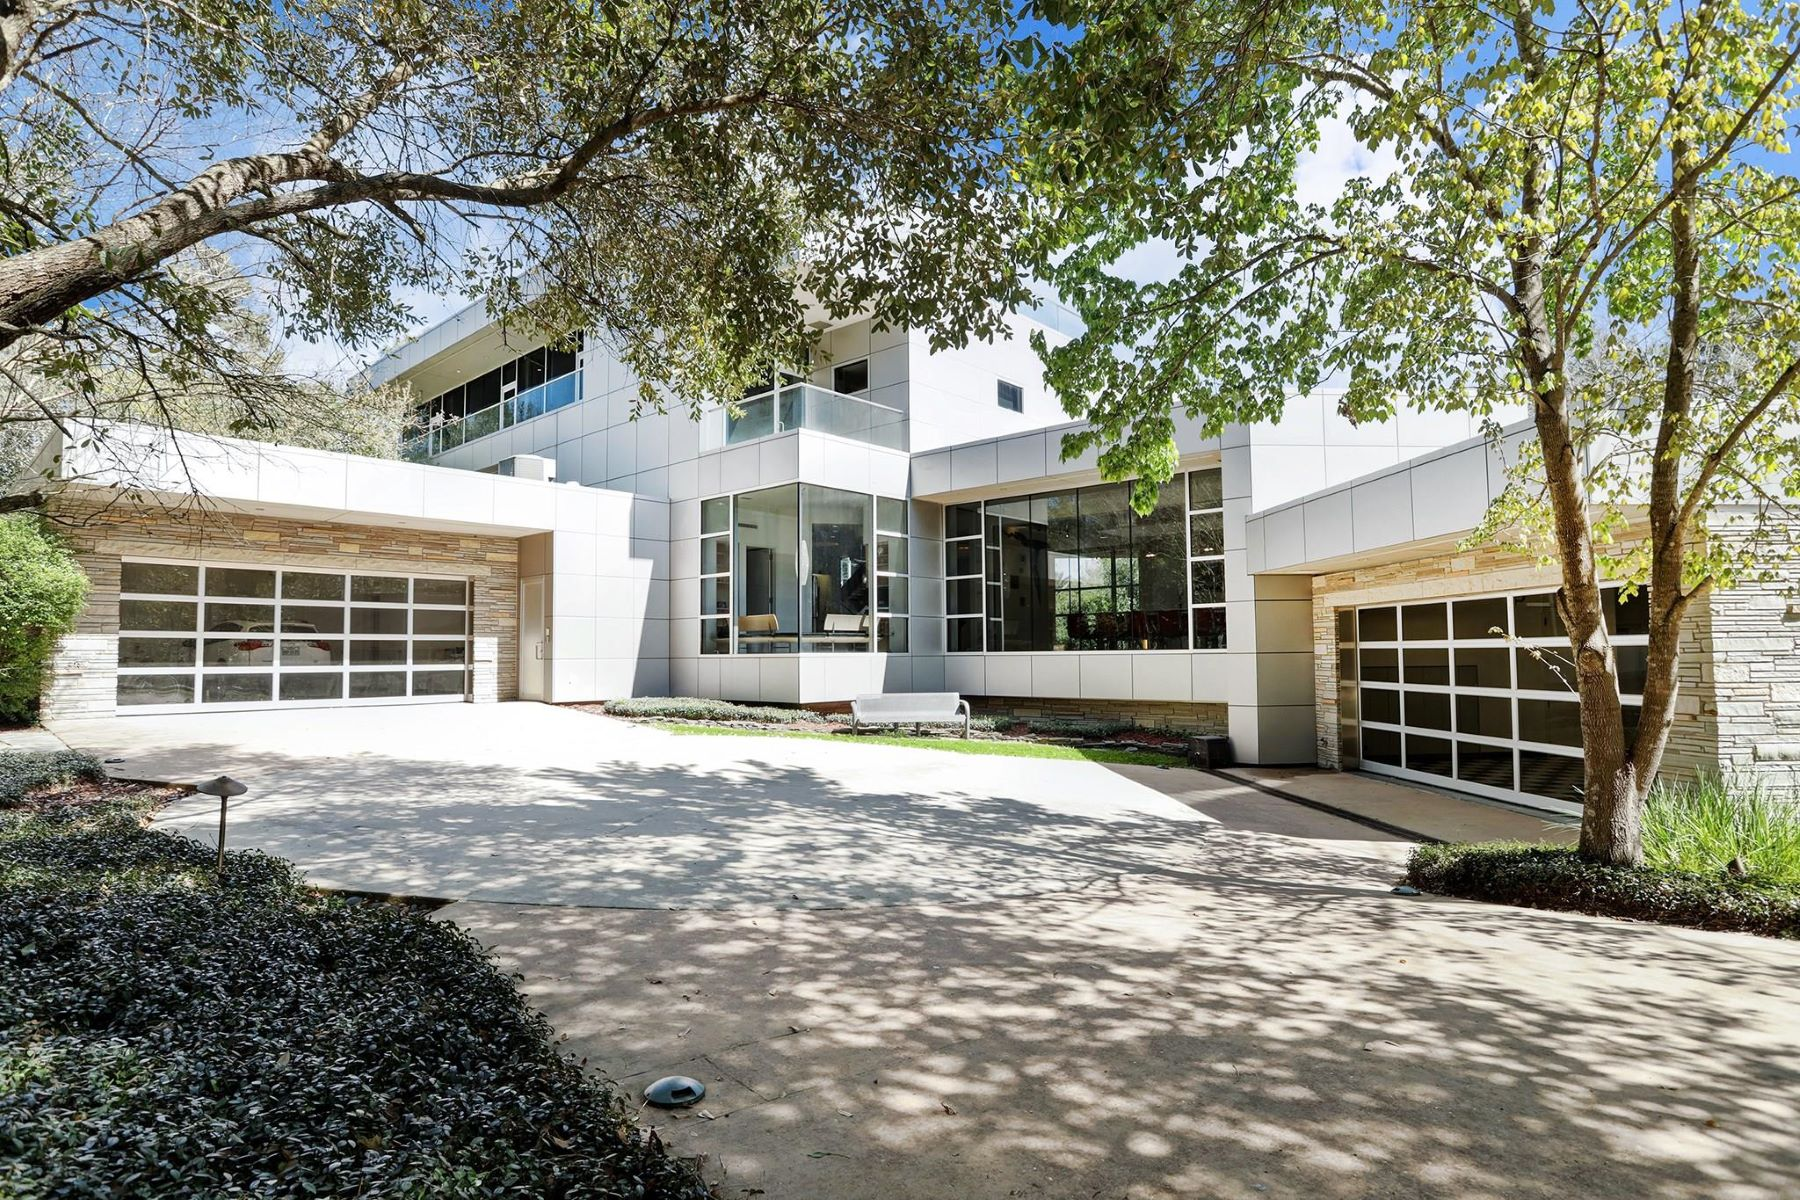 Single Family Homes for Sale at 19 Isle Place 19 W Isle Place The Woodlands, Texas 77381 United States